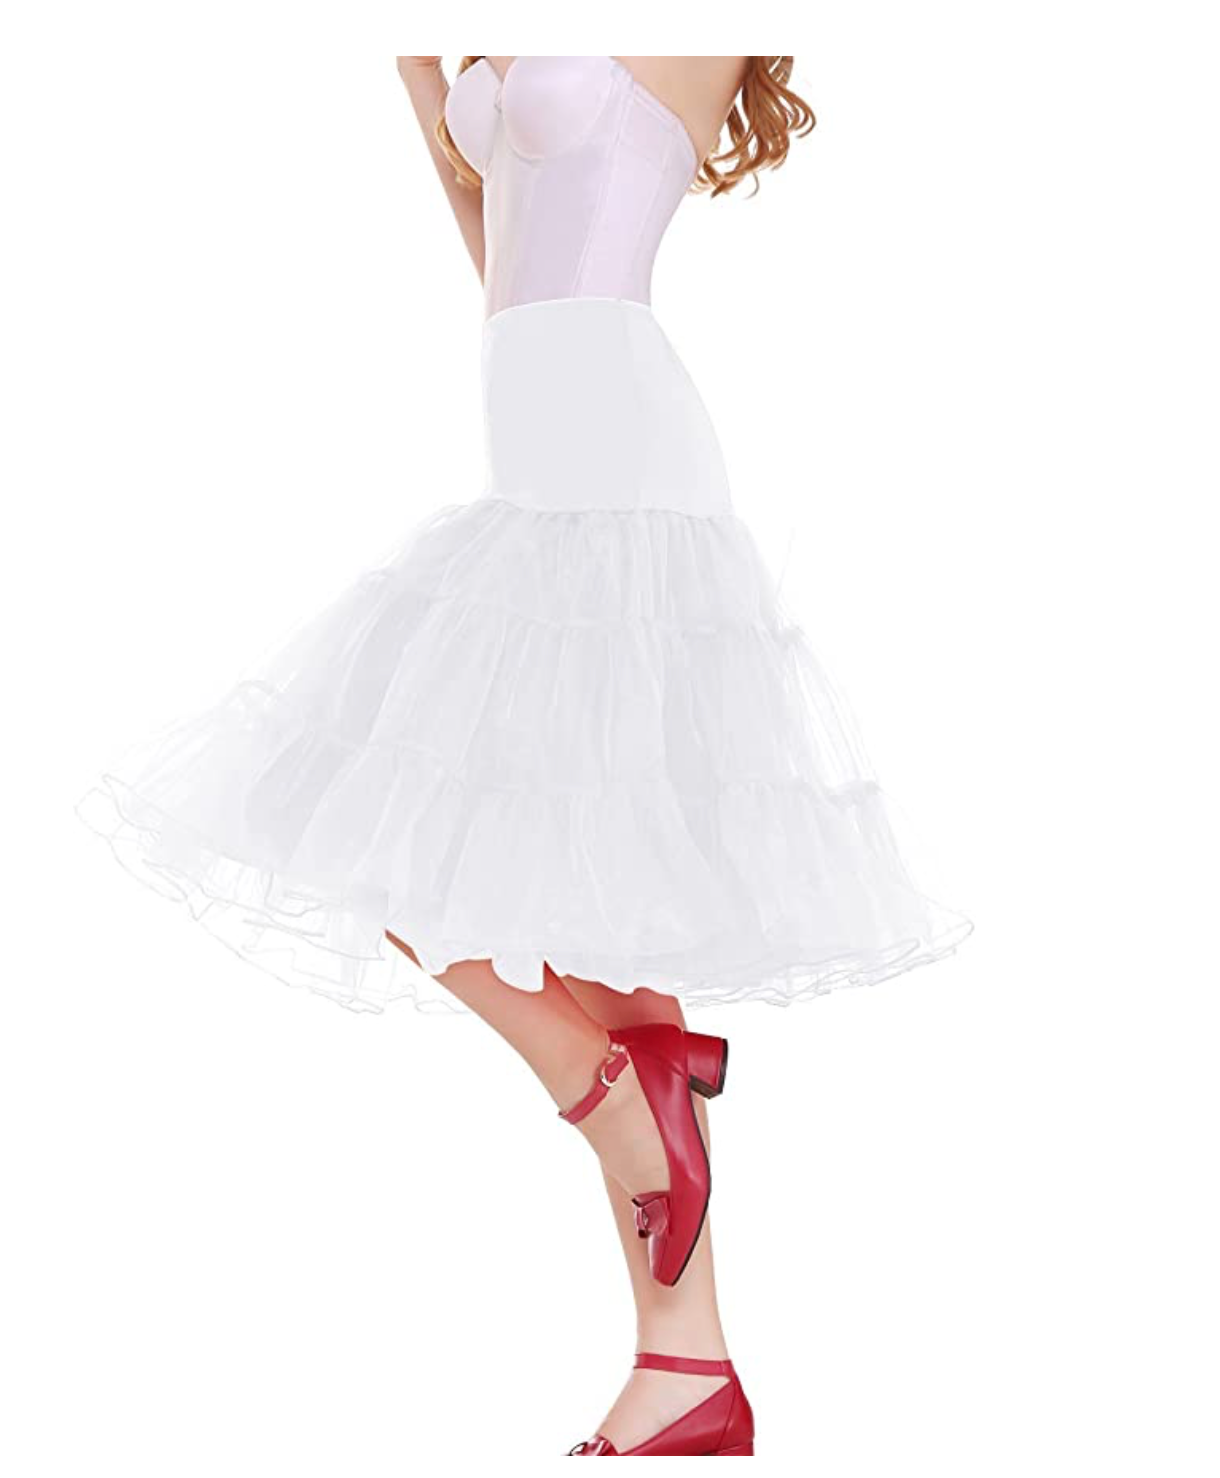 "Women 50s Vintage Rockabilly Petticoat,26"" Length Net Underskirt White, XL - BrandsForLess.CO"